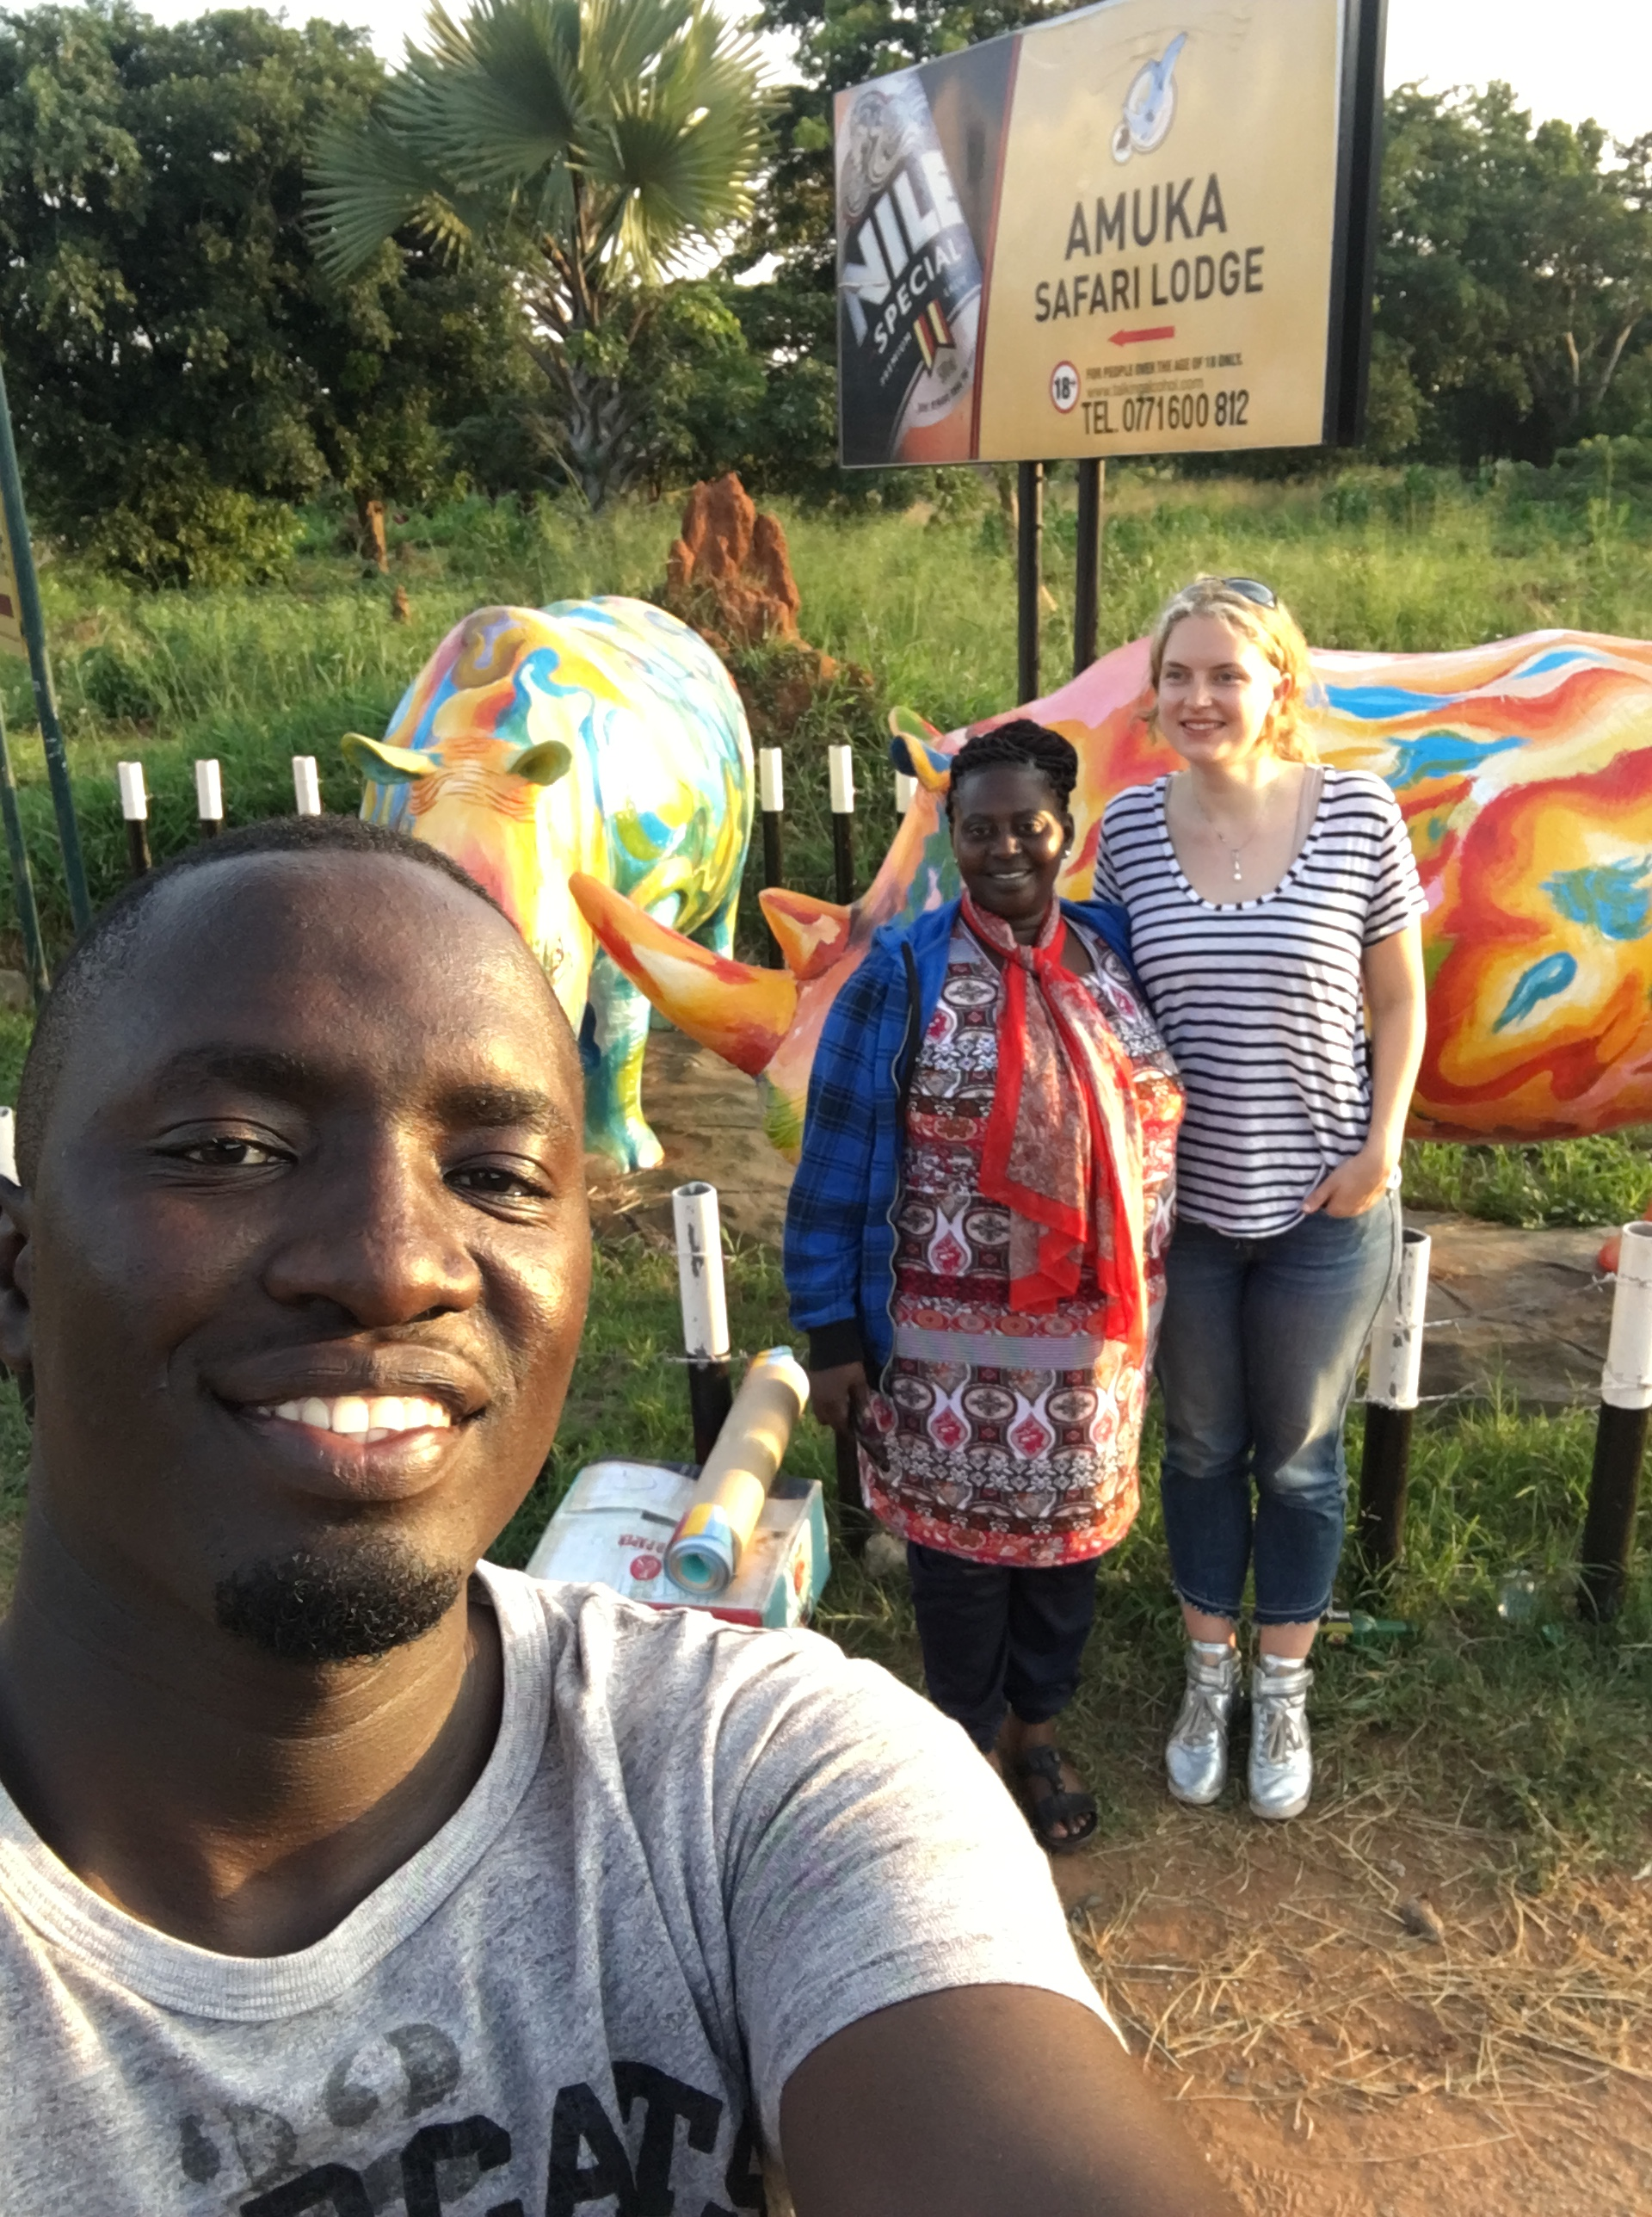 there are three people in the picture. the man in the foreground is taking the selfie. Two women are further back in the picture standing in front of a colourfully painted statue of a rhino. There is a sign behind the statue Amuka Safari Lodge